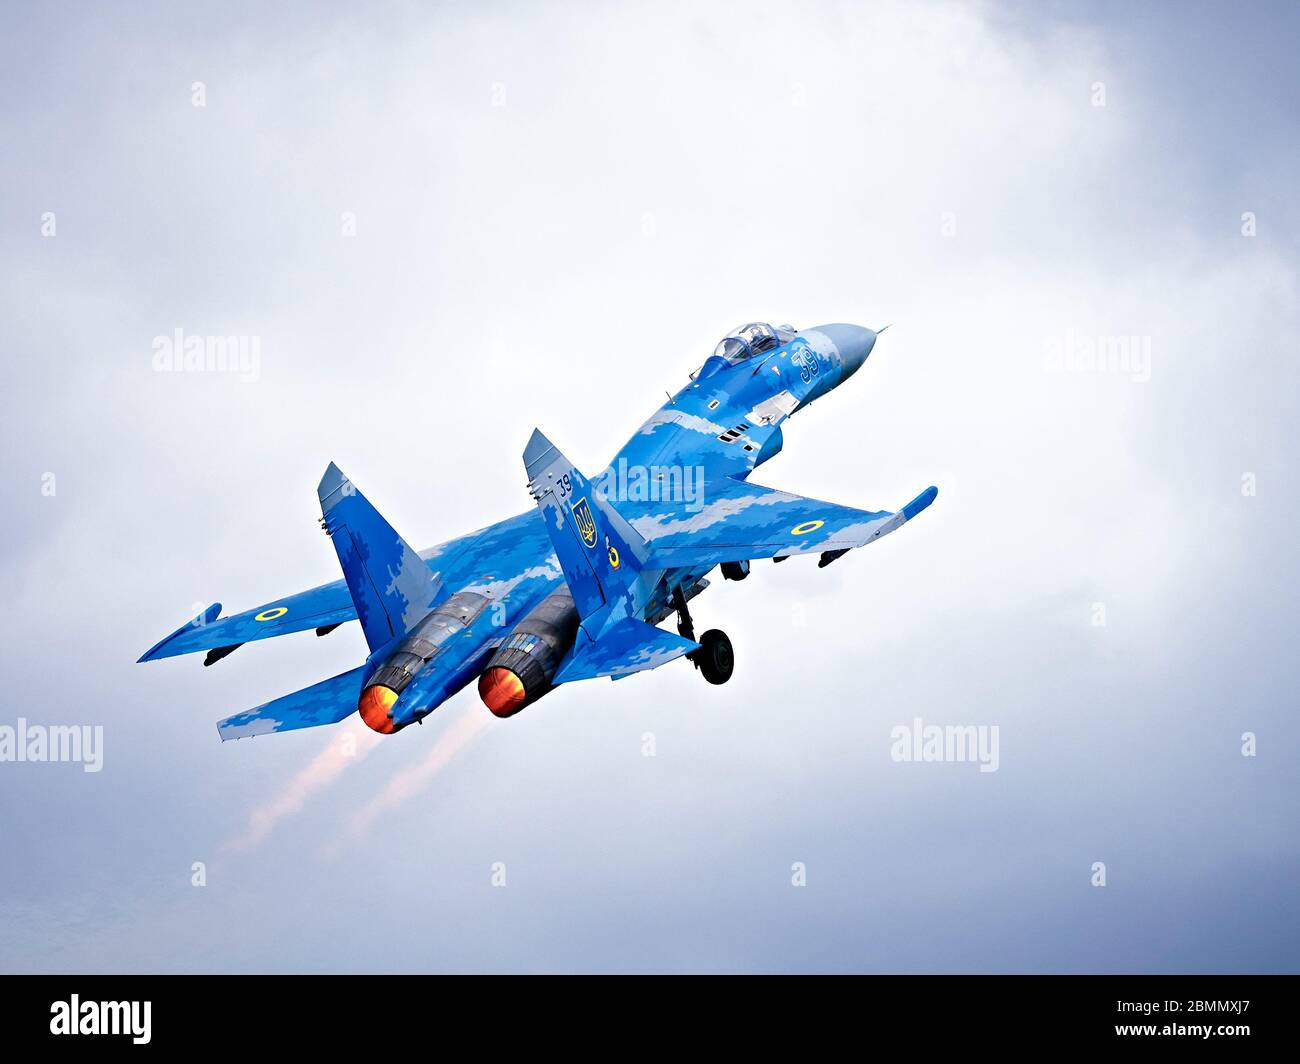 """Ukrainian Air Force Sukhoi Su-27 (NATO reporting name: """"Flanker"""") flying at RIAT 2019 Stock Photo"""